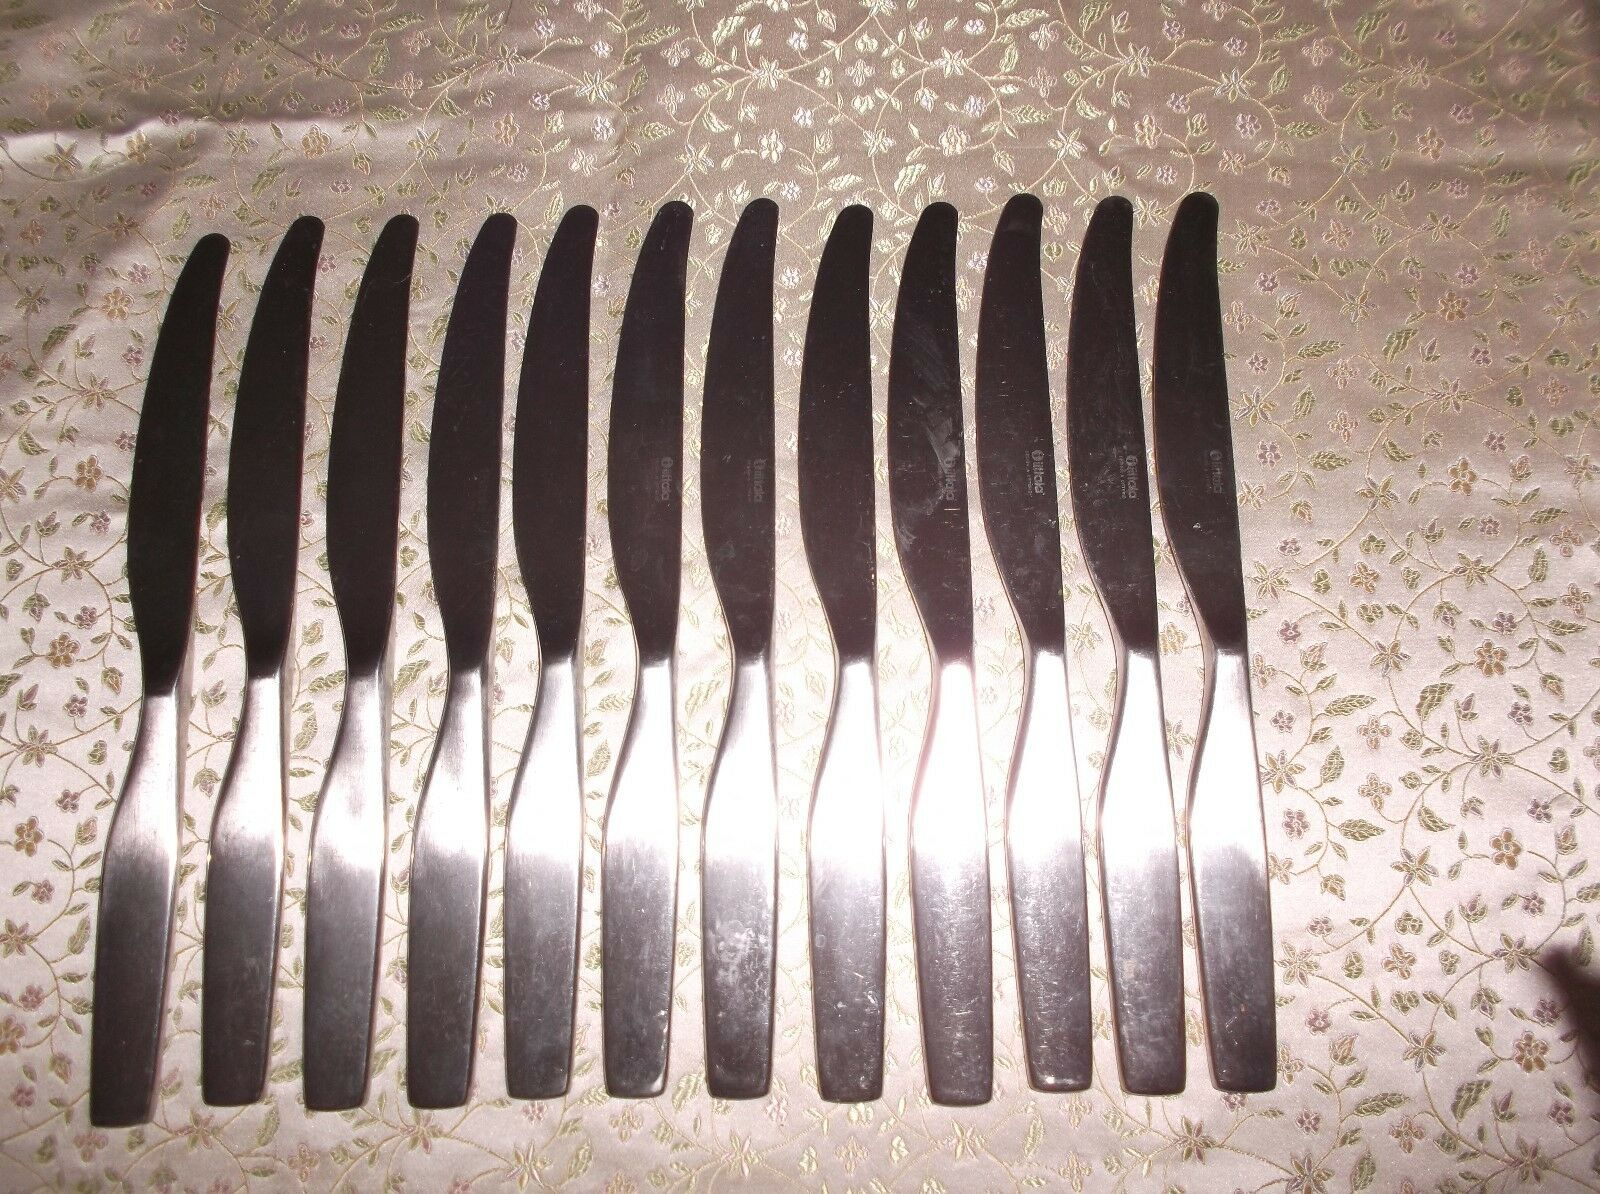 12 Iittala Stainless Steel  Dinner Knives, A Citerio 98, Matte, Modern Design